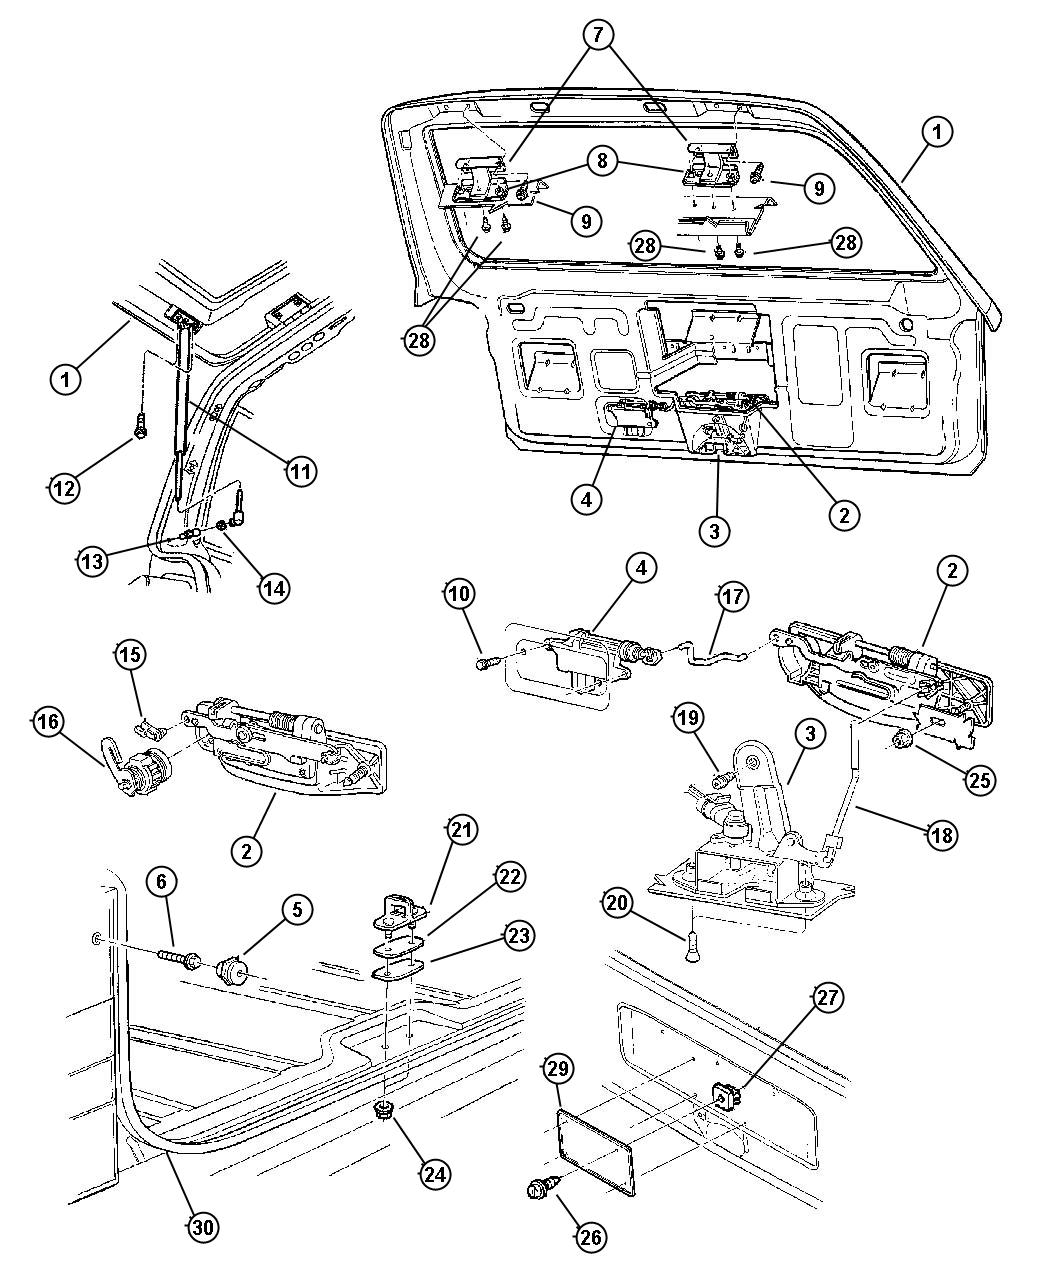 1999 Jeep Grand Cherokee Rear Door Parts Diagram Search For Wiring Liftgate Auto 2001 2008